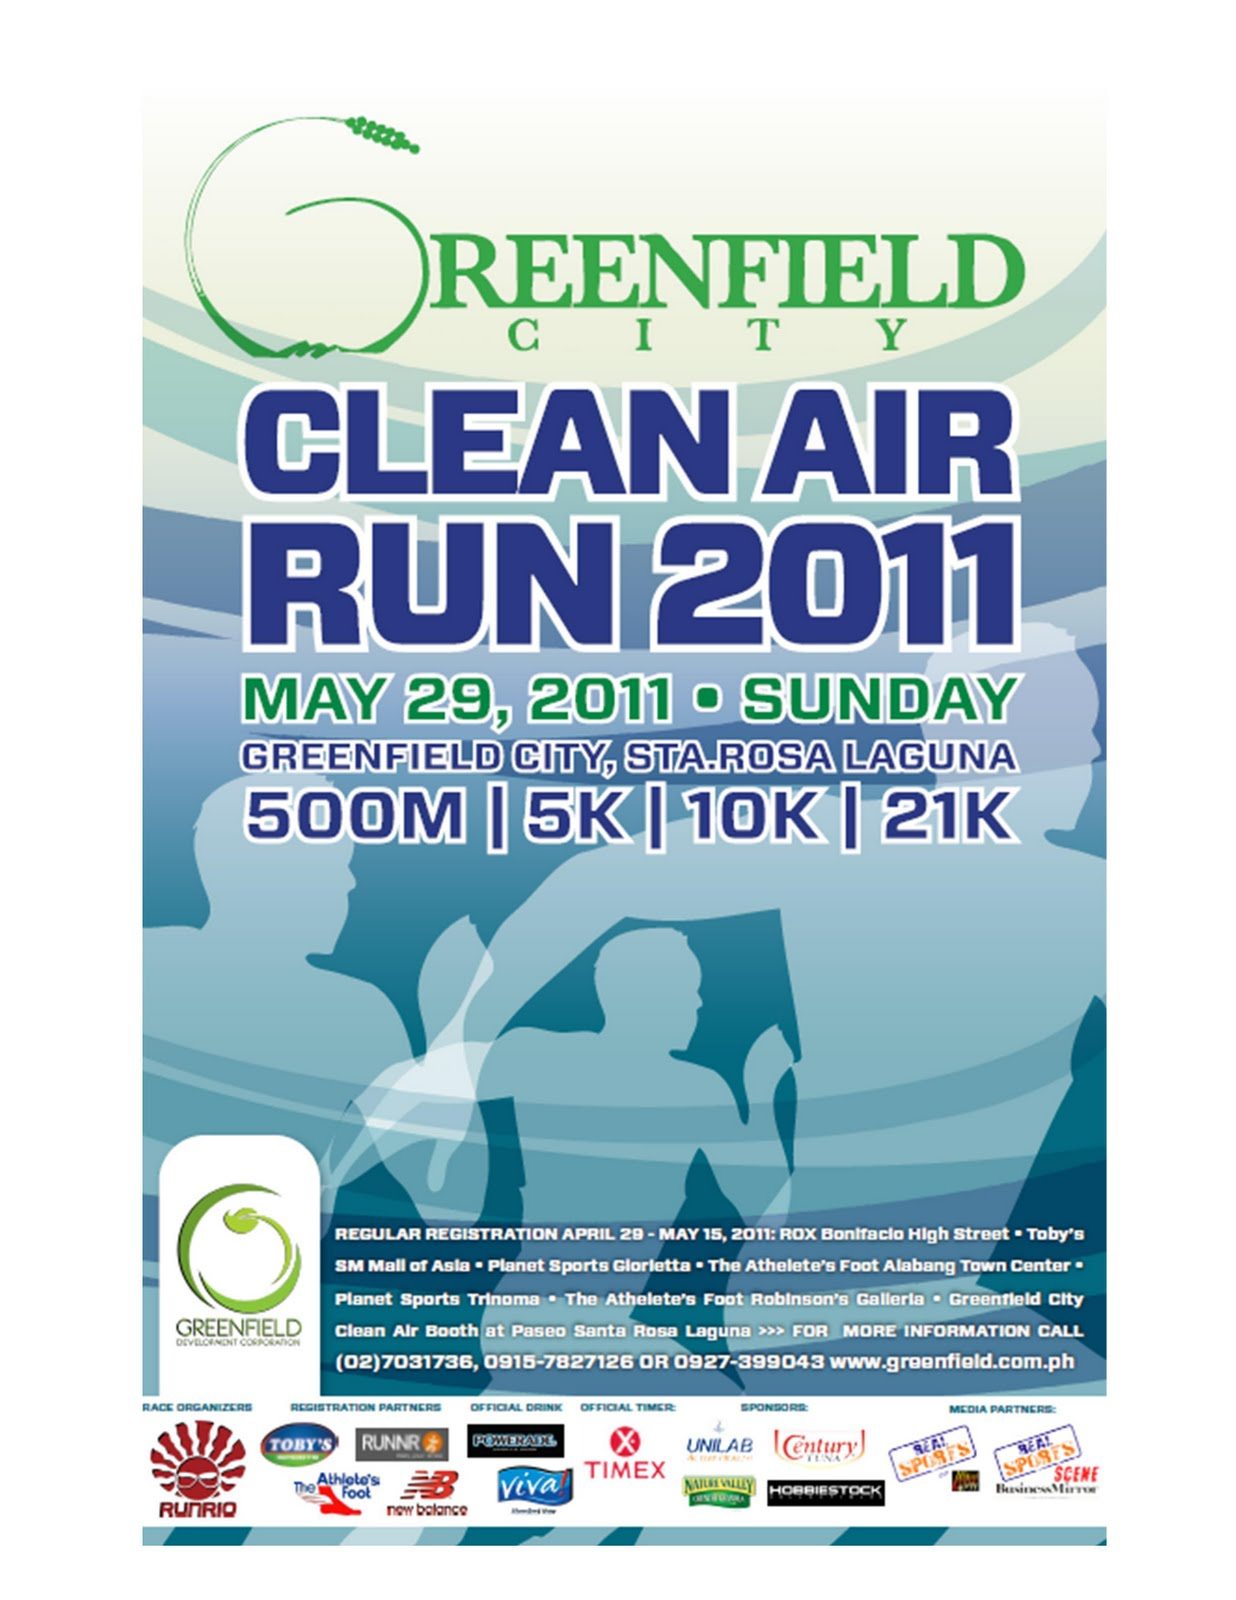 Jet paiso greenfield city run 29 may 2011 sta rosa laguna greenfield development corporation invites all runners to experience running in a pollution free environment on may 29 2011 at the greenfield city stopboris Gallery